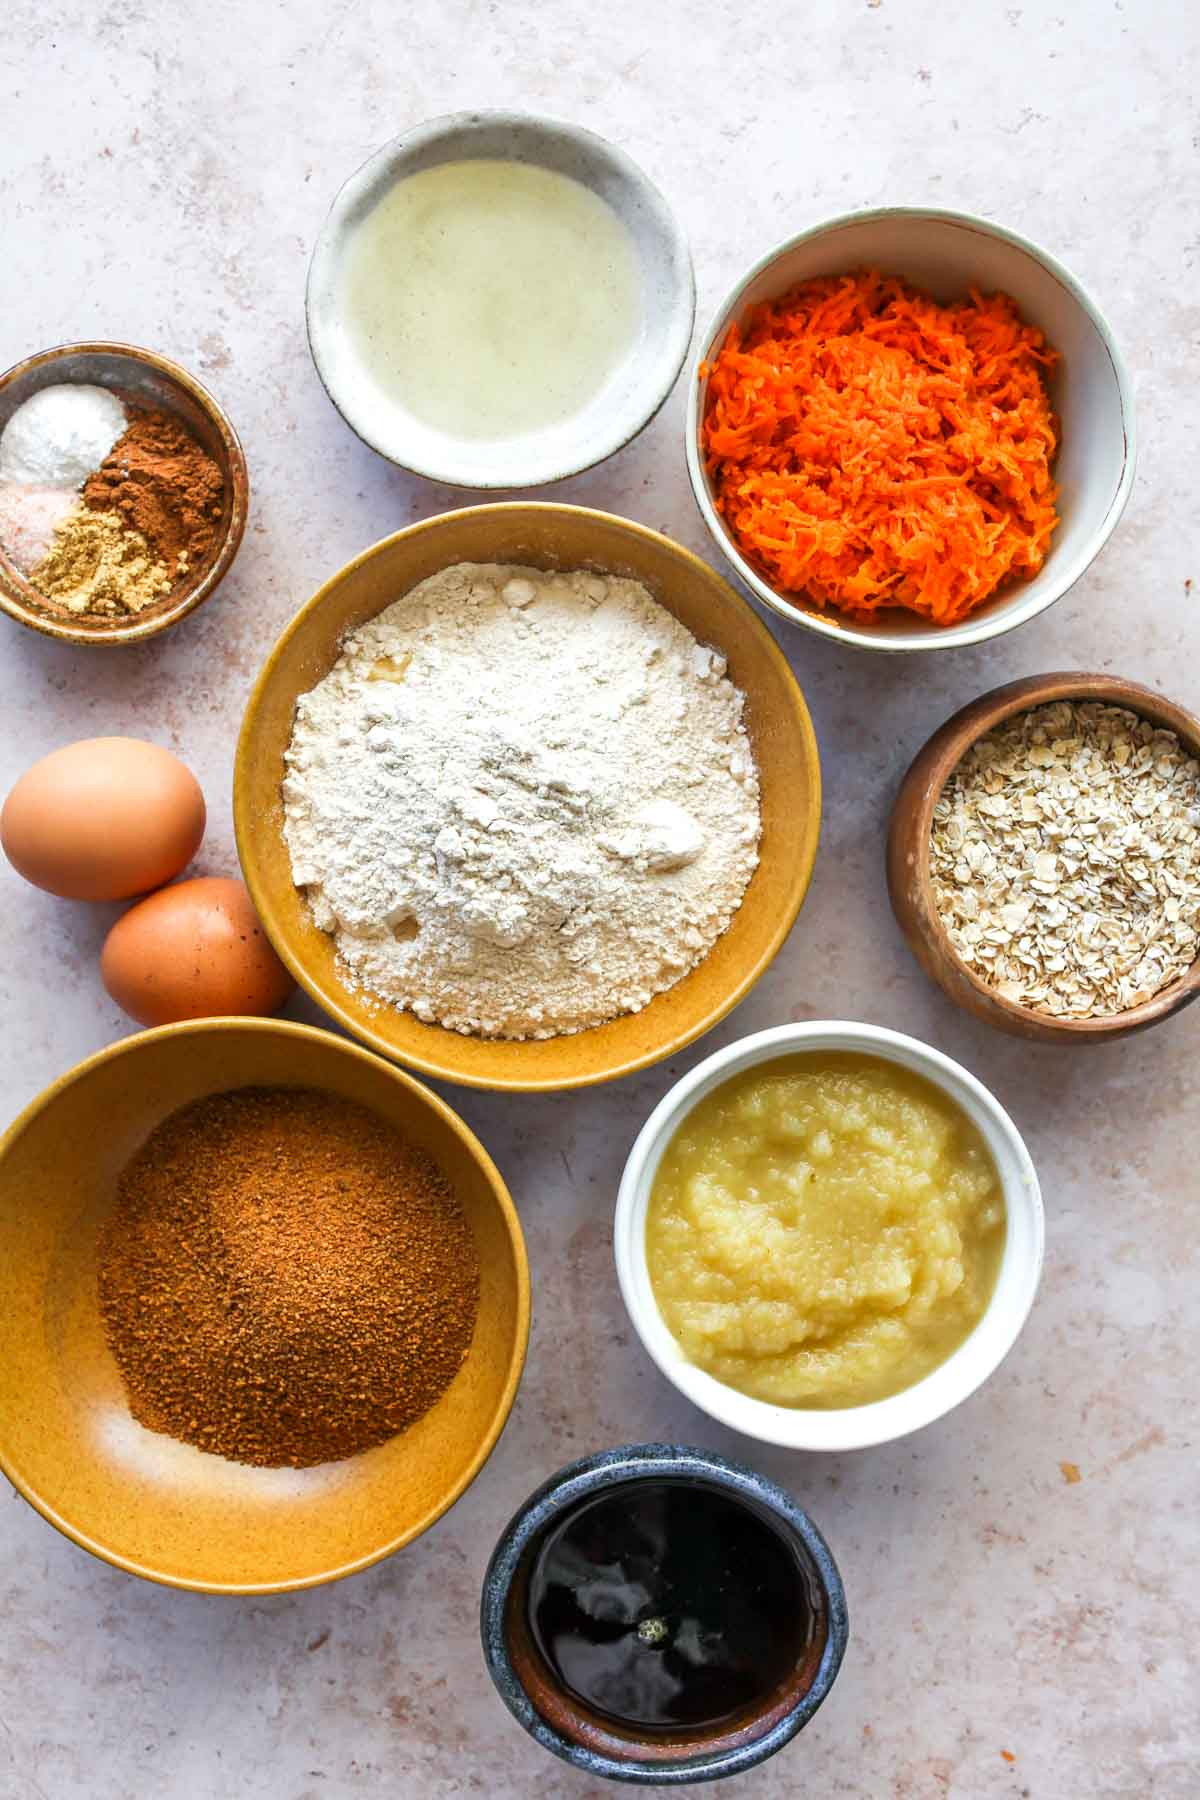 Carrot apple bread ingredients in separate bowls on a white board